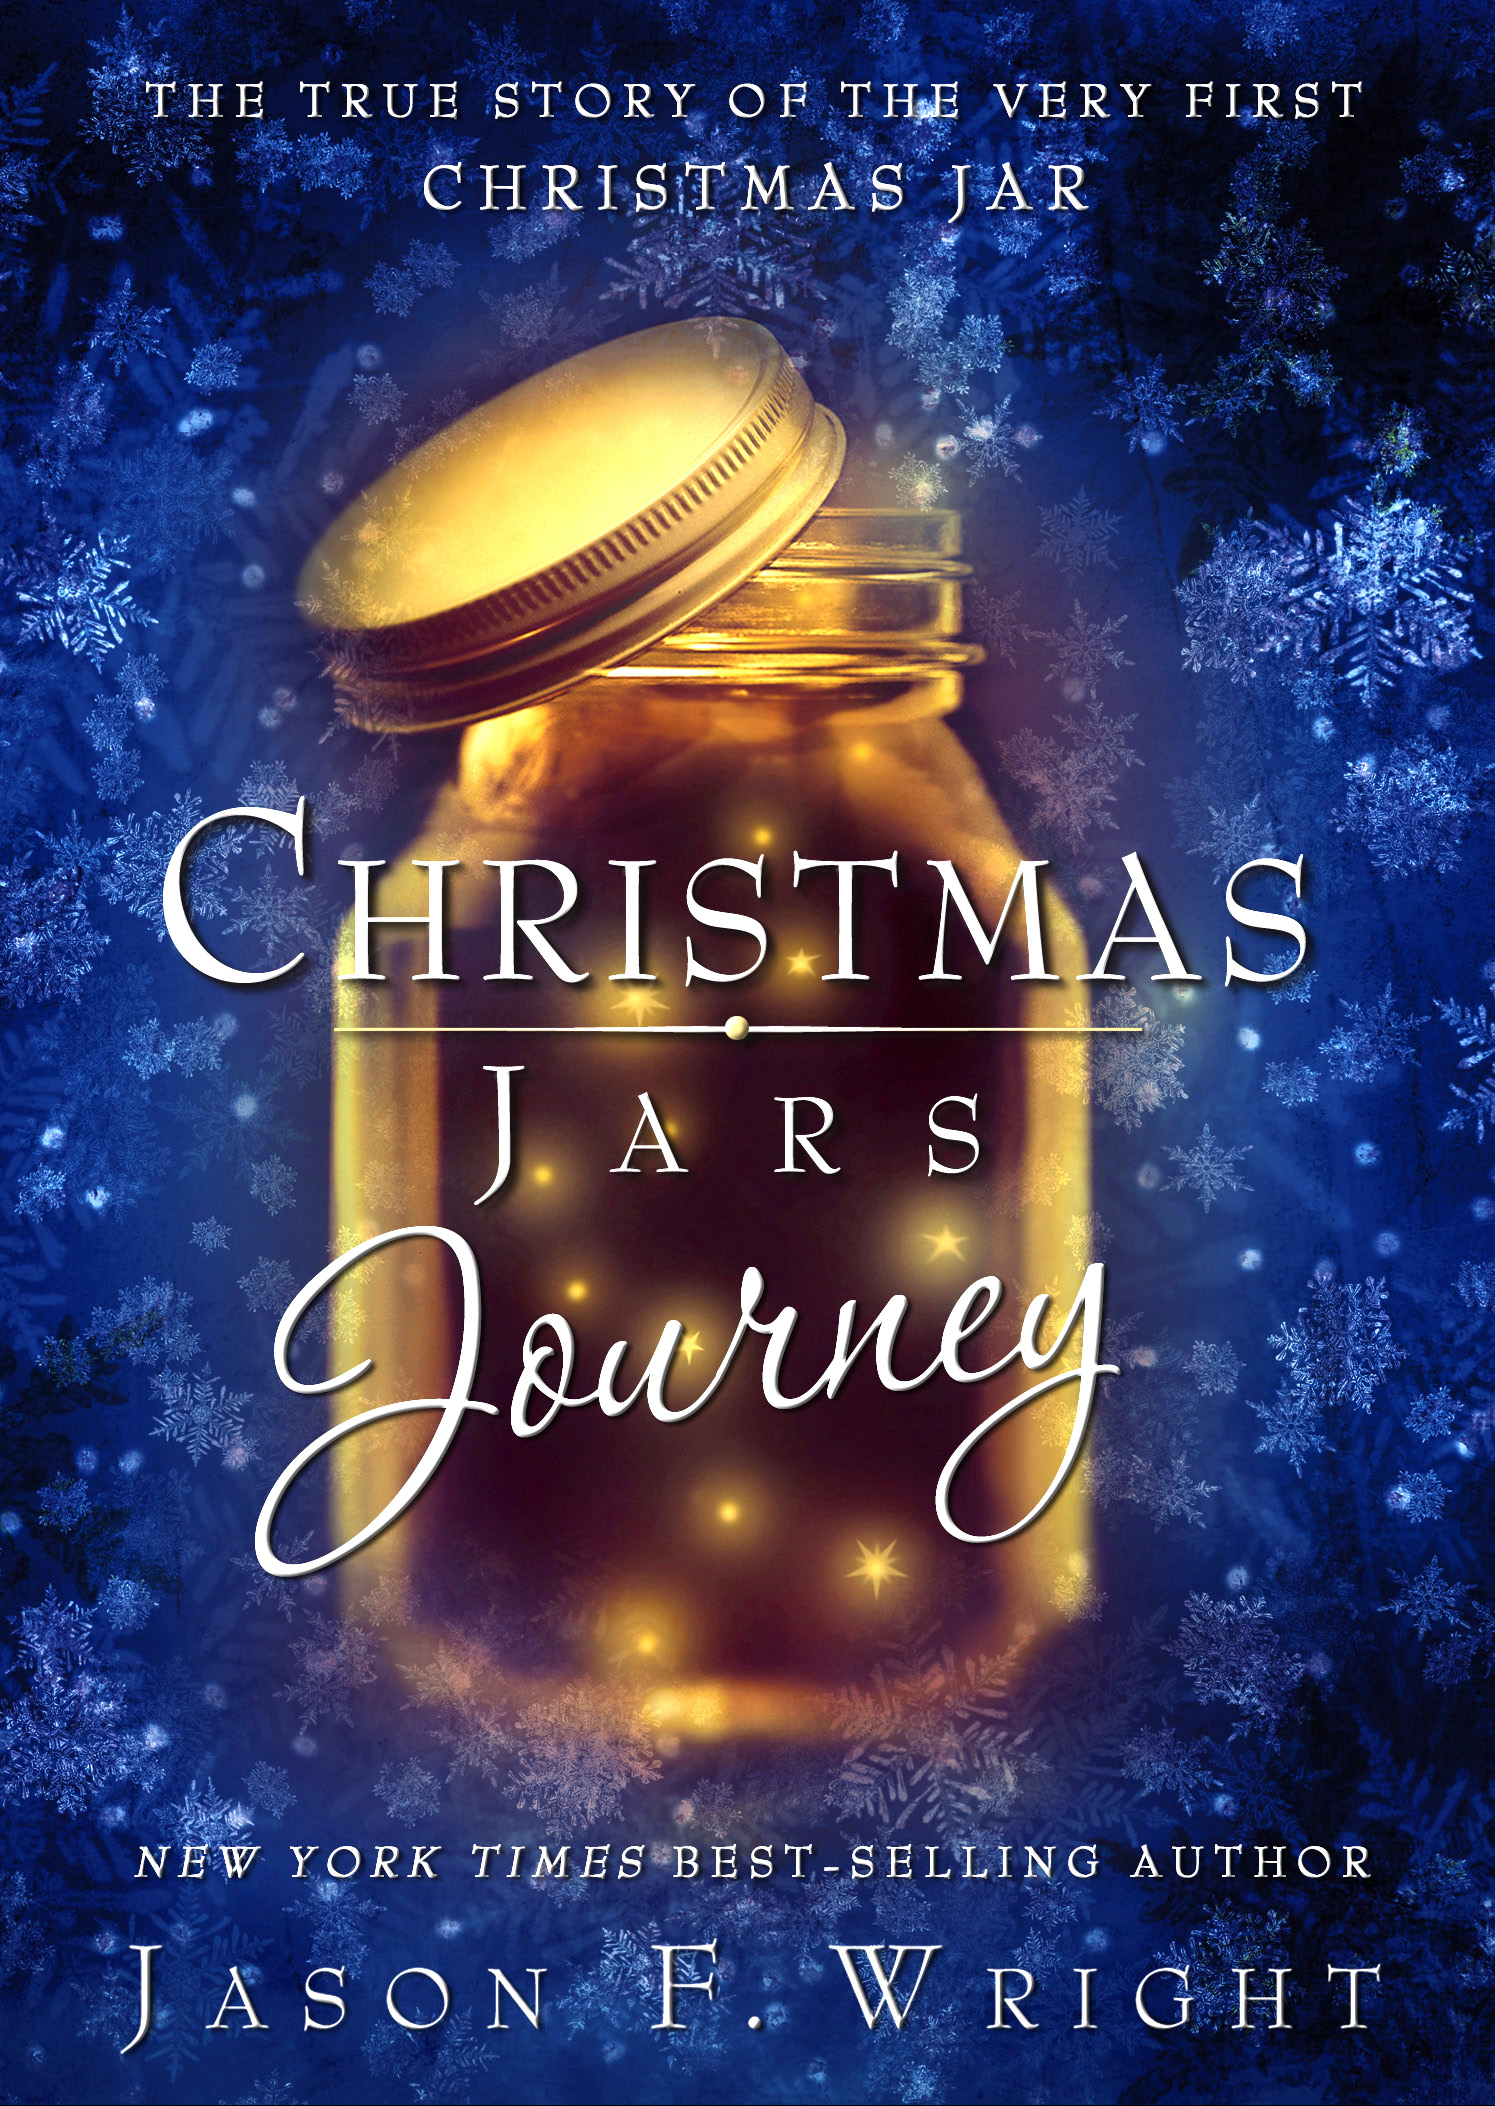 Read the first six pages of Christmas Jars Journey